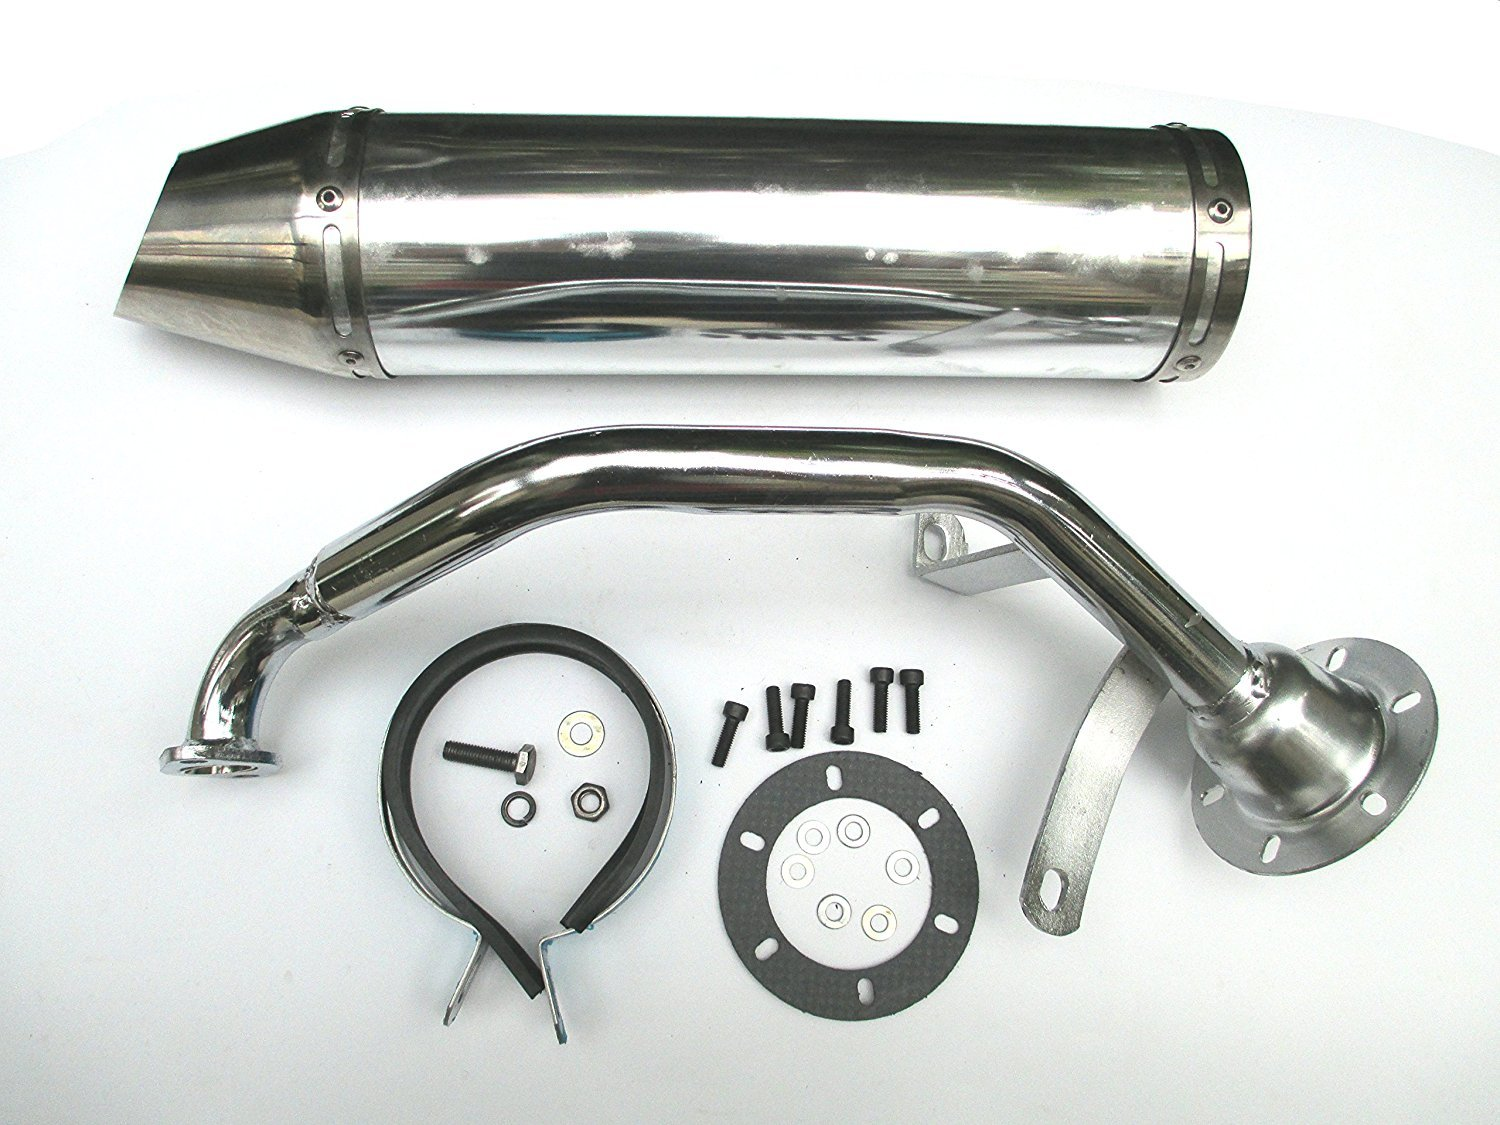 High Performance Exhaust System Muffler for GY6 139QMB QMB139 1P39QMB 4 Stroke 150cc Scooters Silver